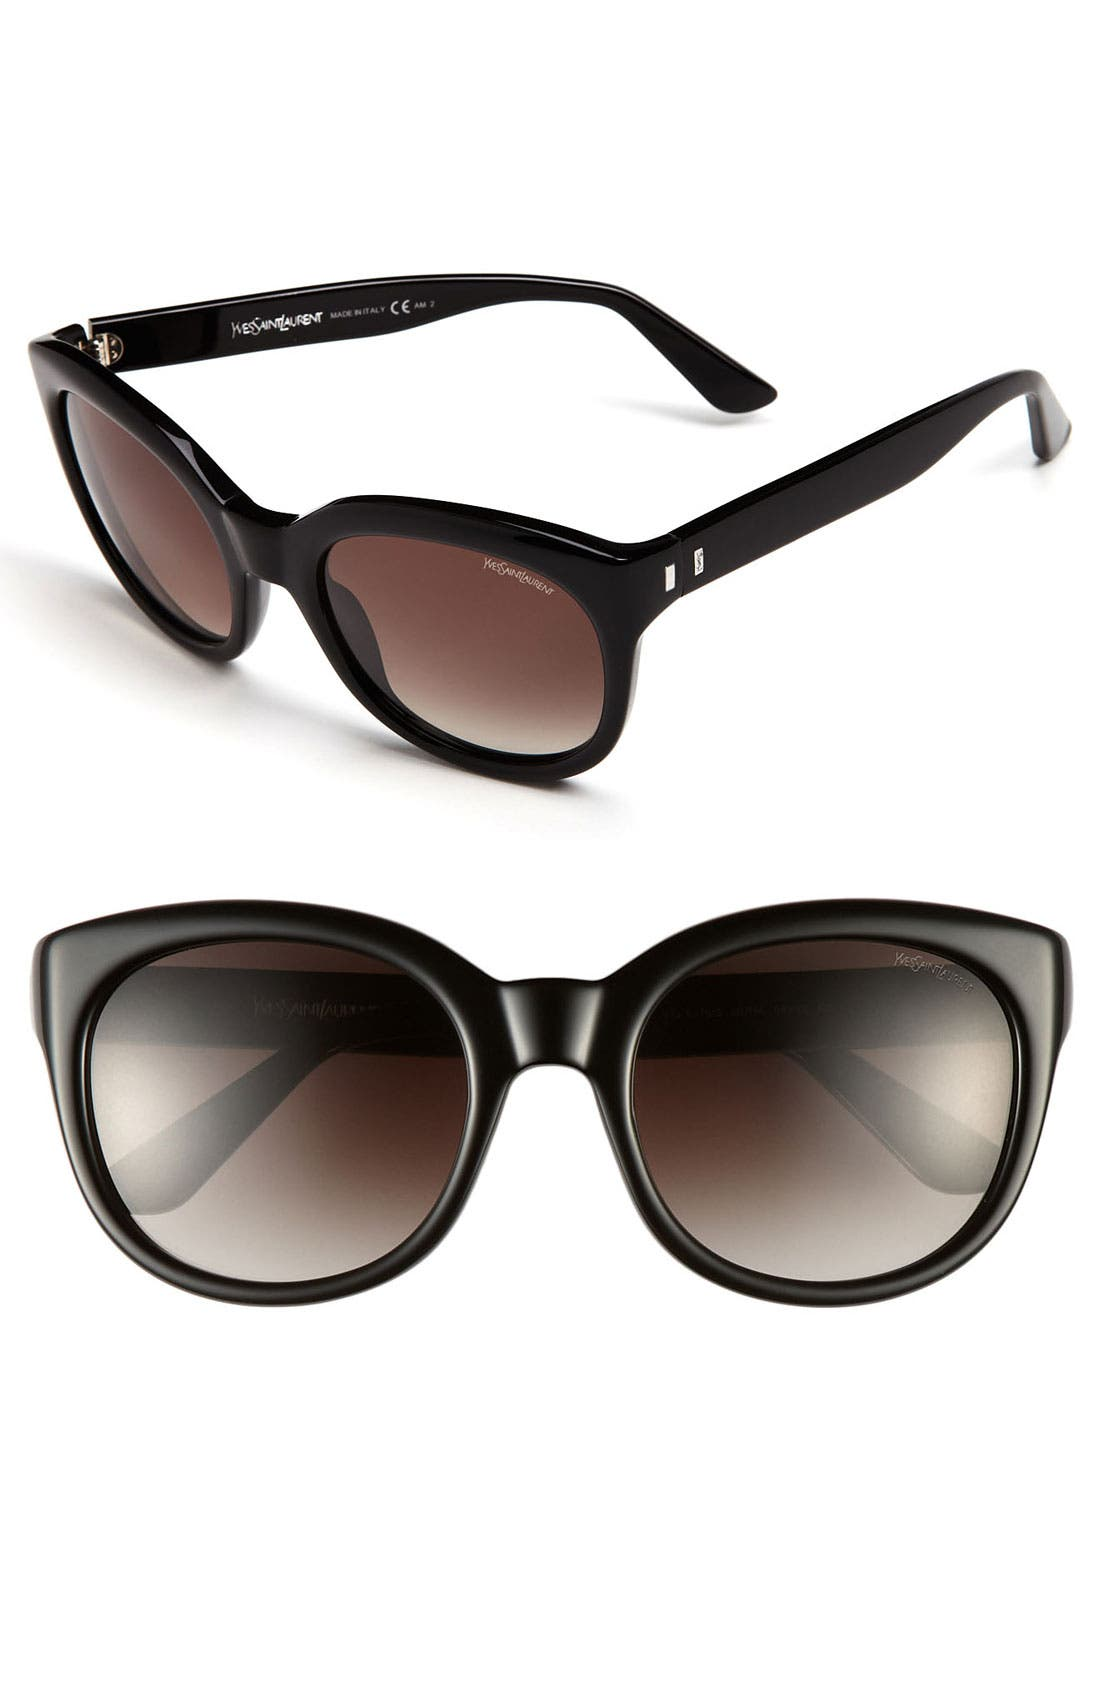 Saint Laurent Cat's Eye Sunglasses,                             Main thumbnail 1, color,